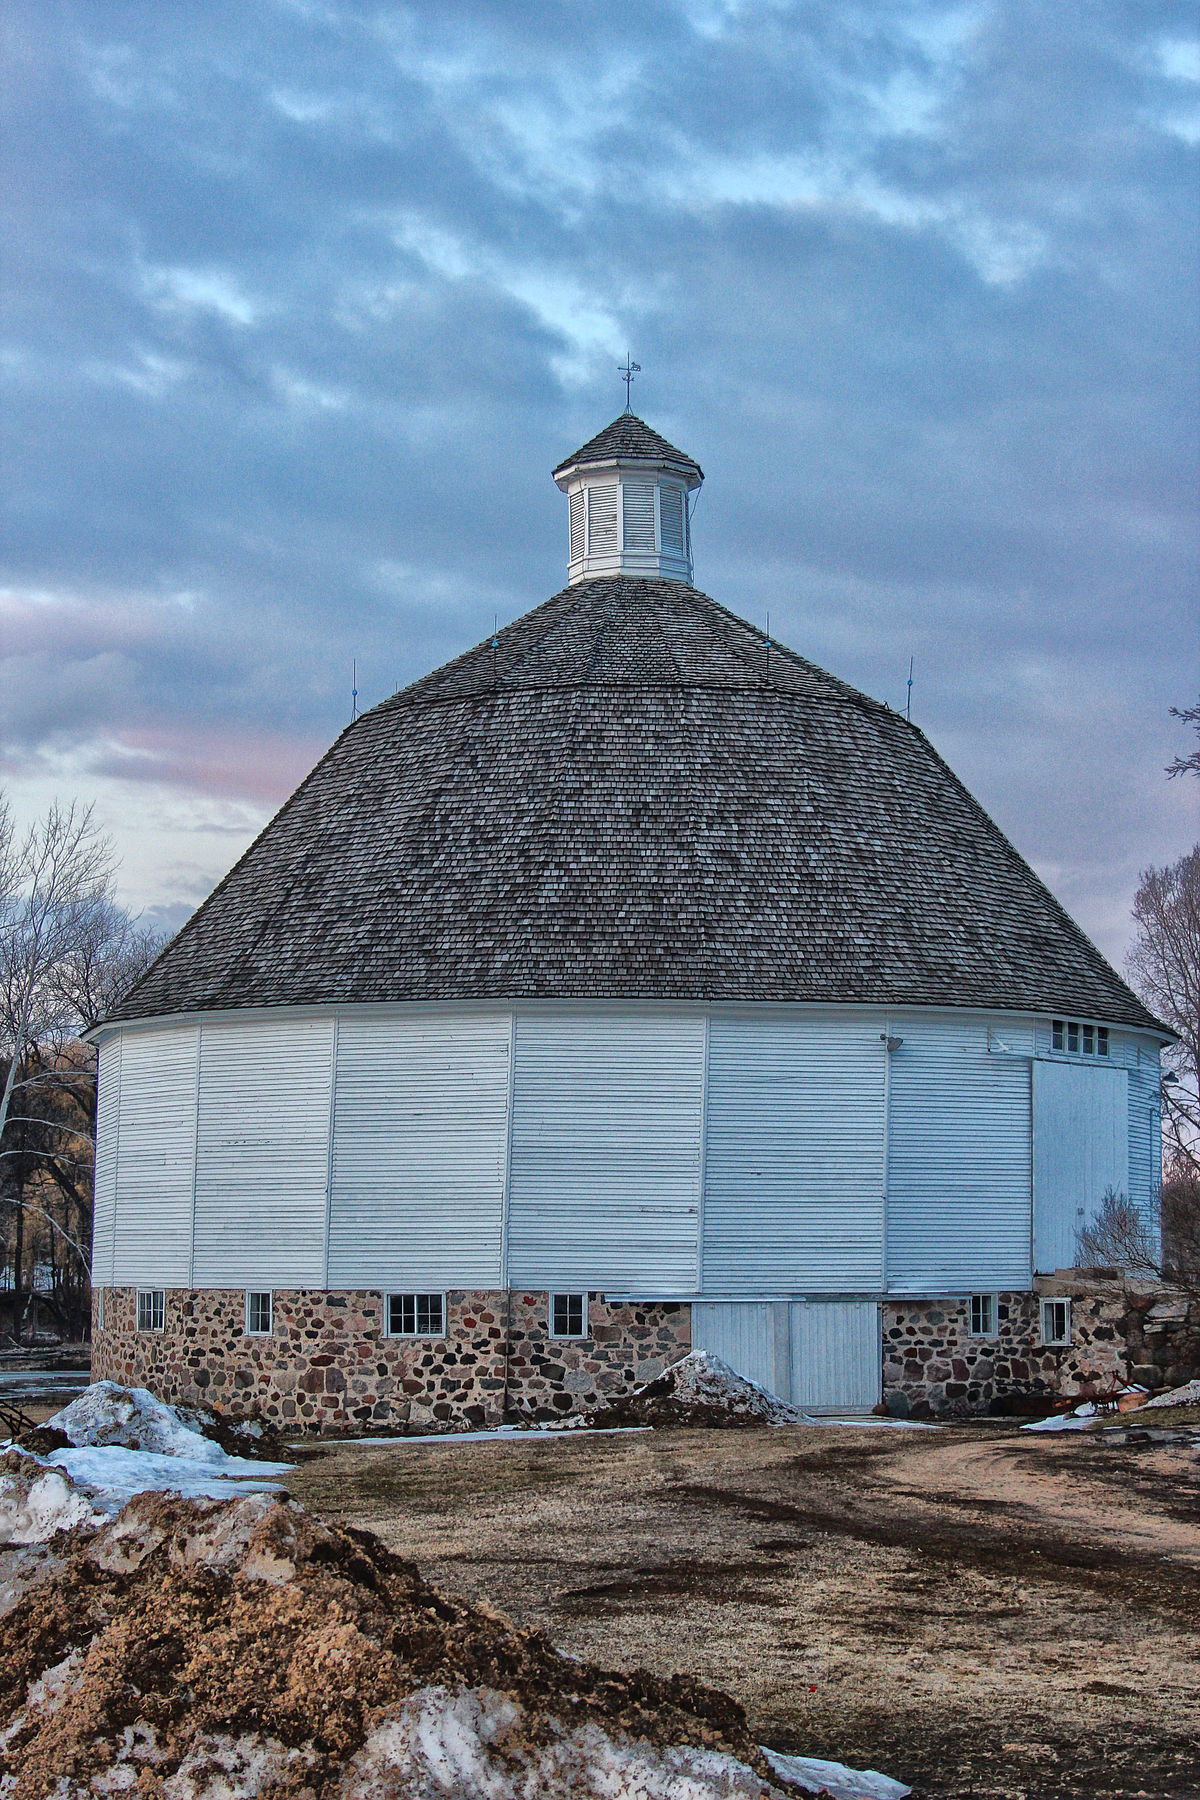 Nashold 20 Sided Barn Wikipedia